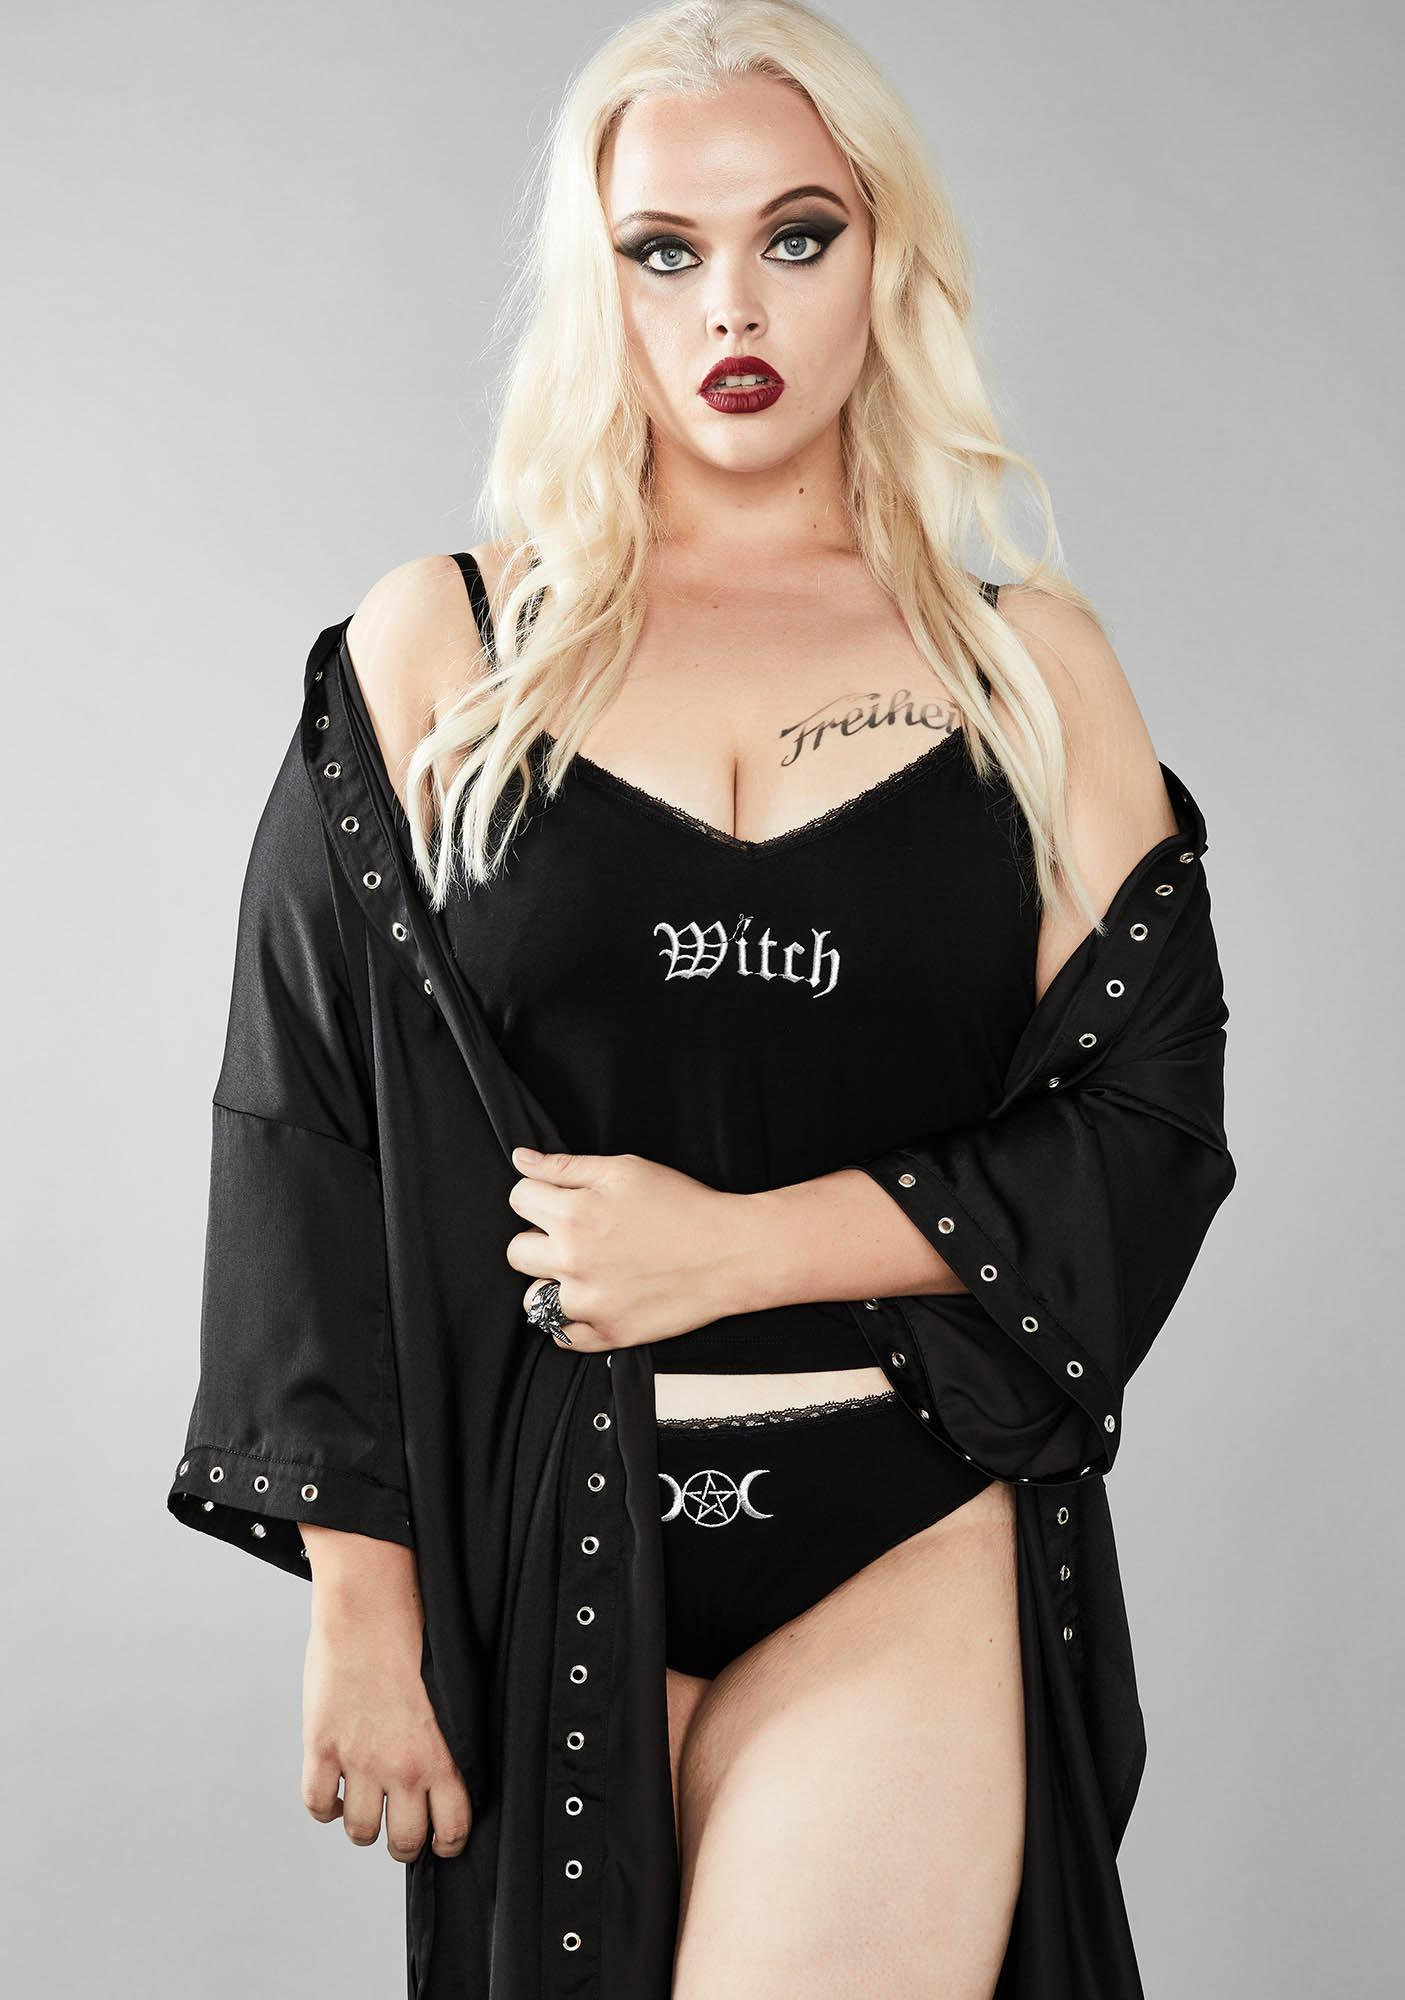 Widow Devilish Witch Tendencies Embroidered Set